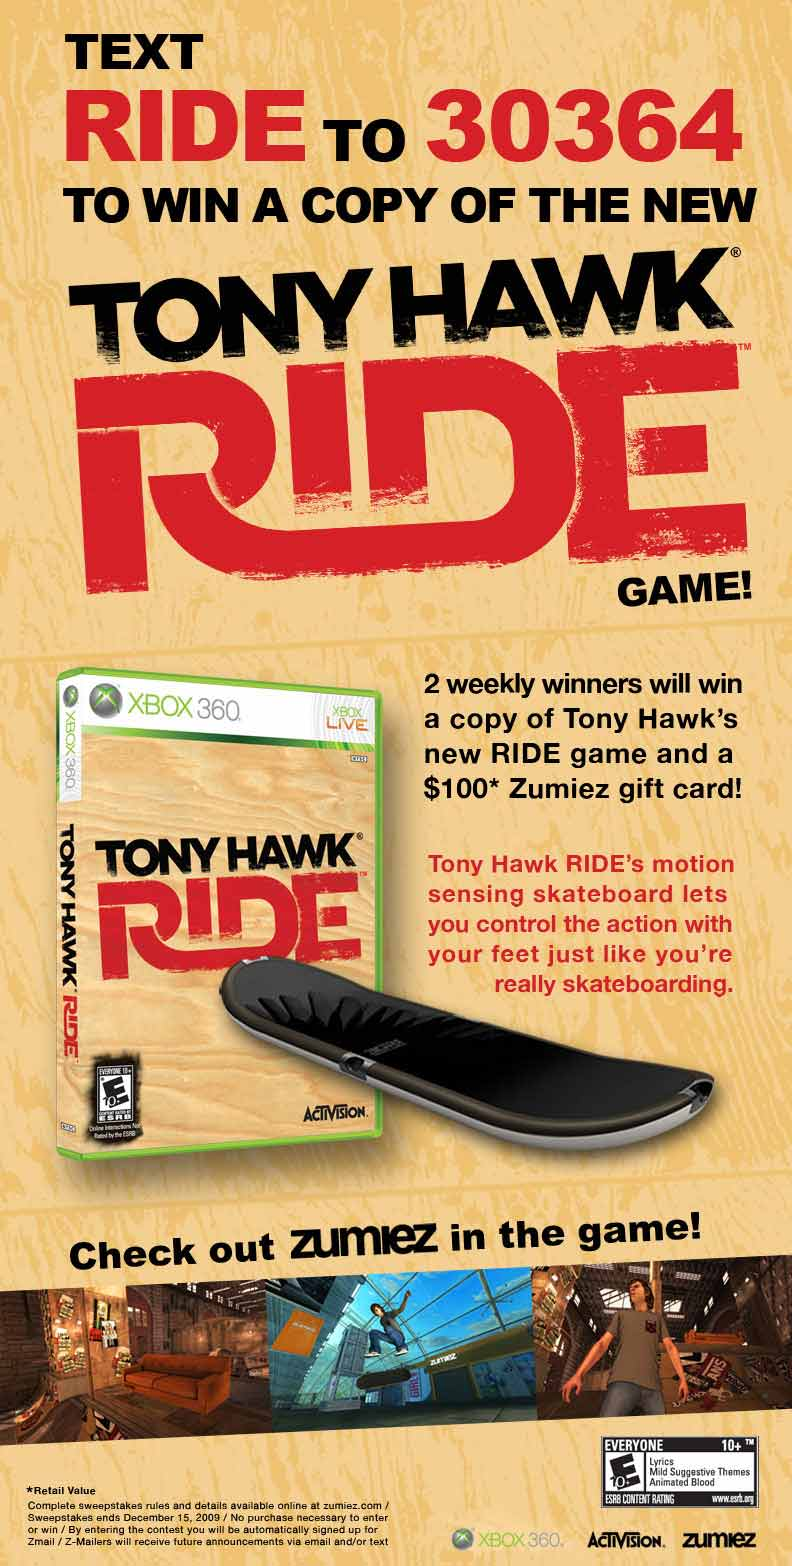 Tony Hawk Ride Game